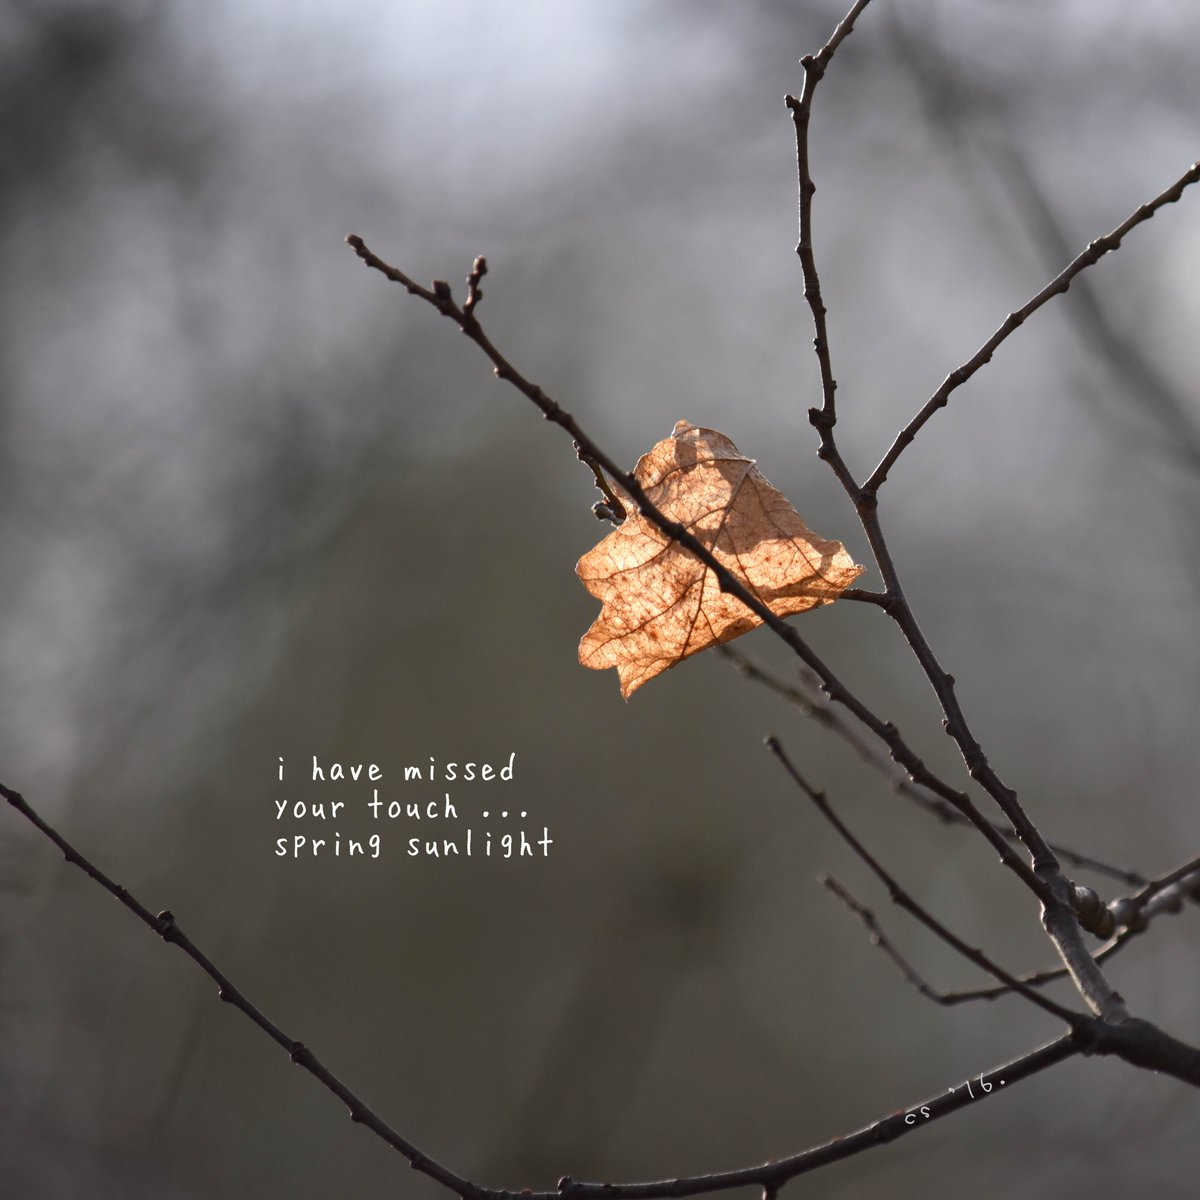 i have missed your touch ... spring sunlight  #micropoetry #haiga https://t.co/SlIcKrt5Gn